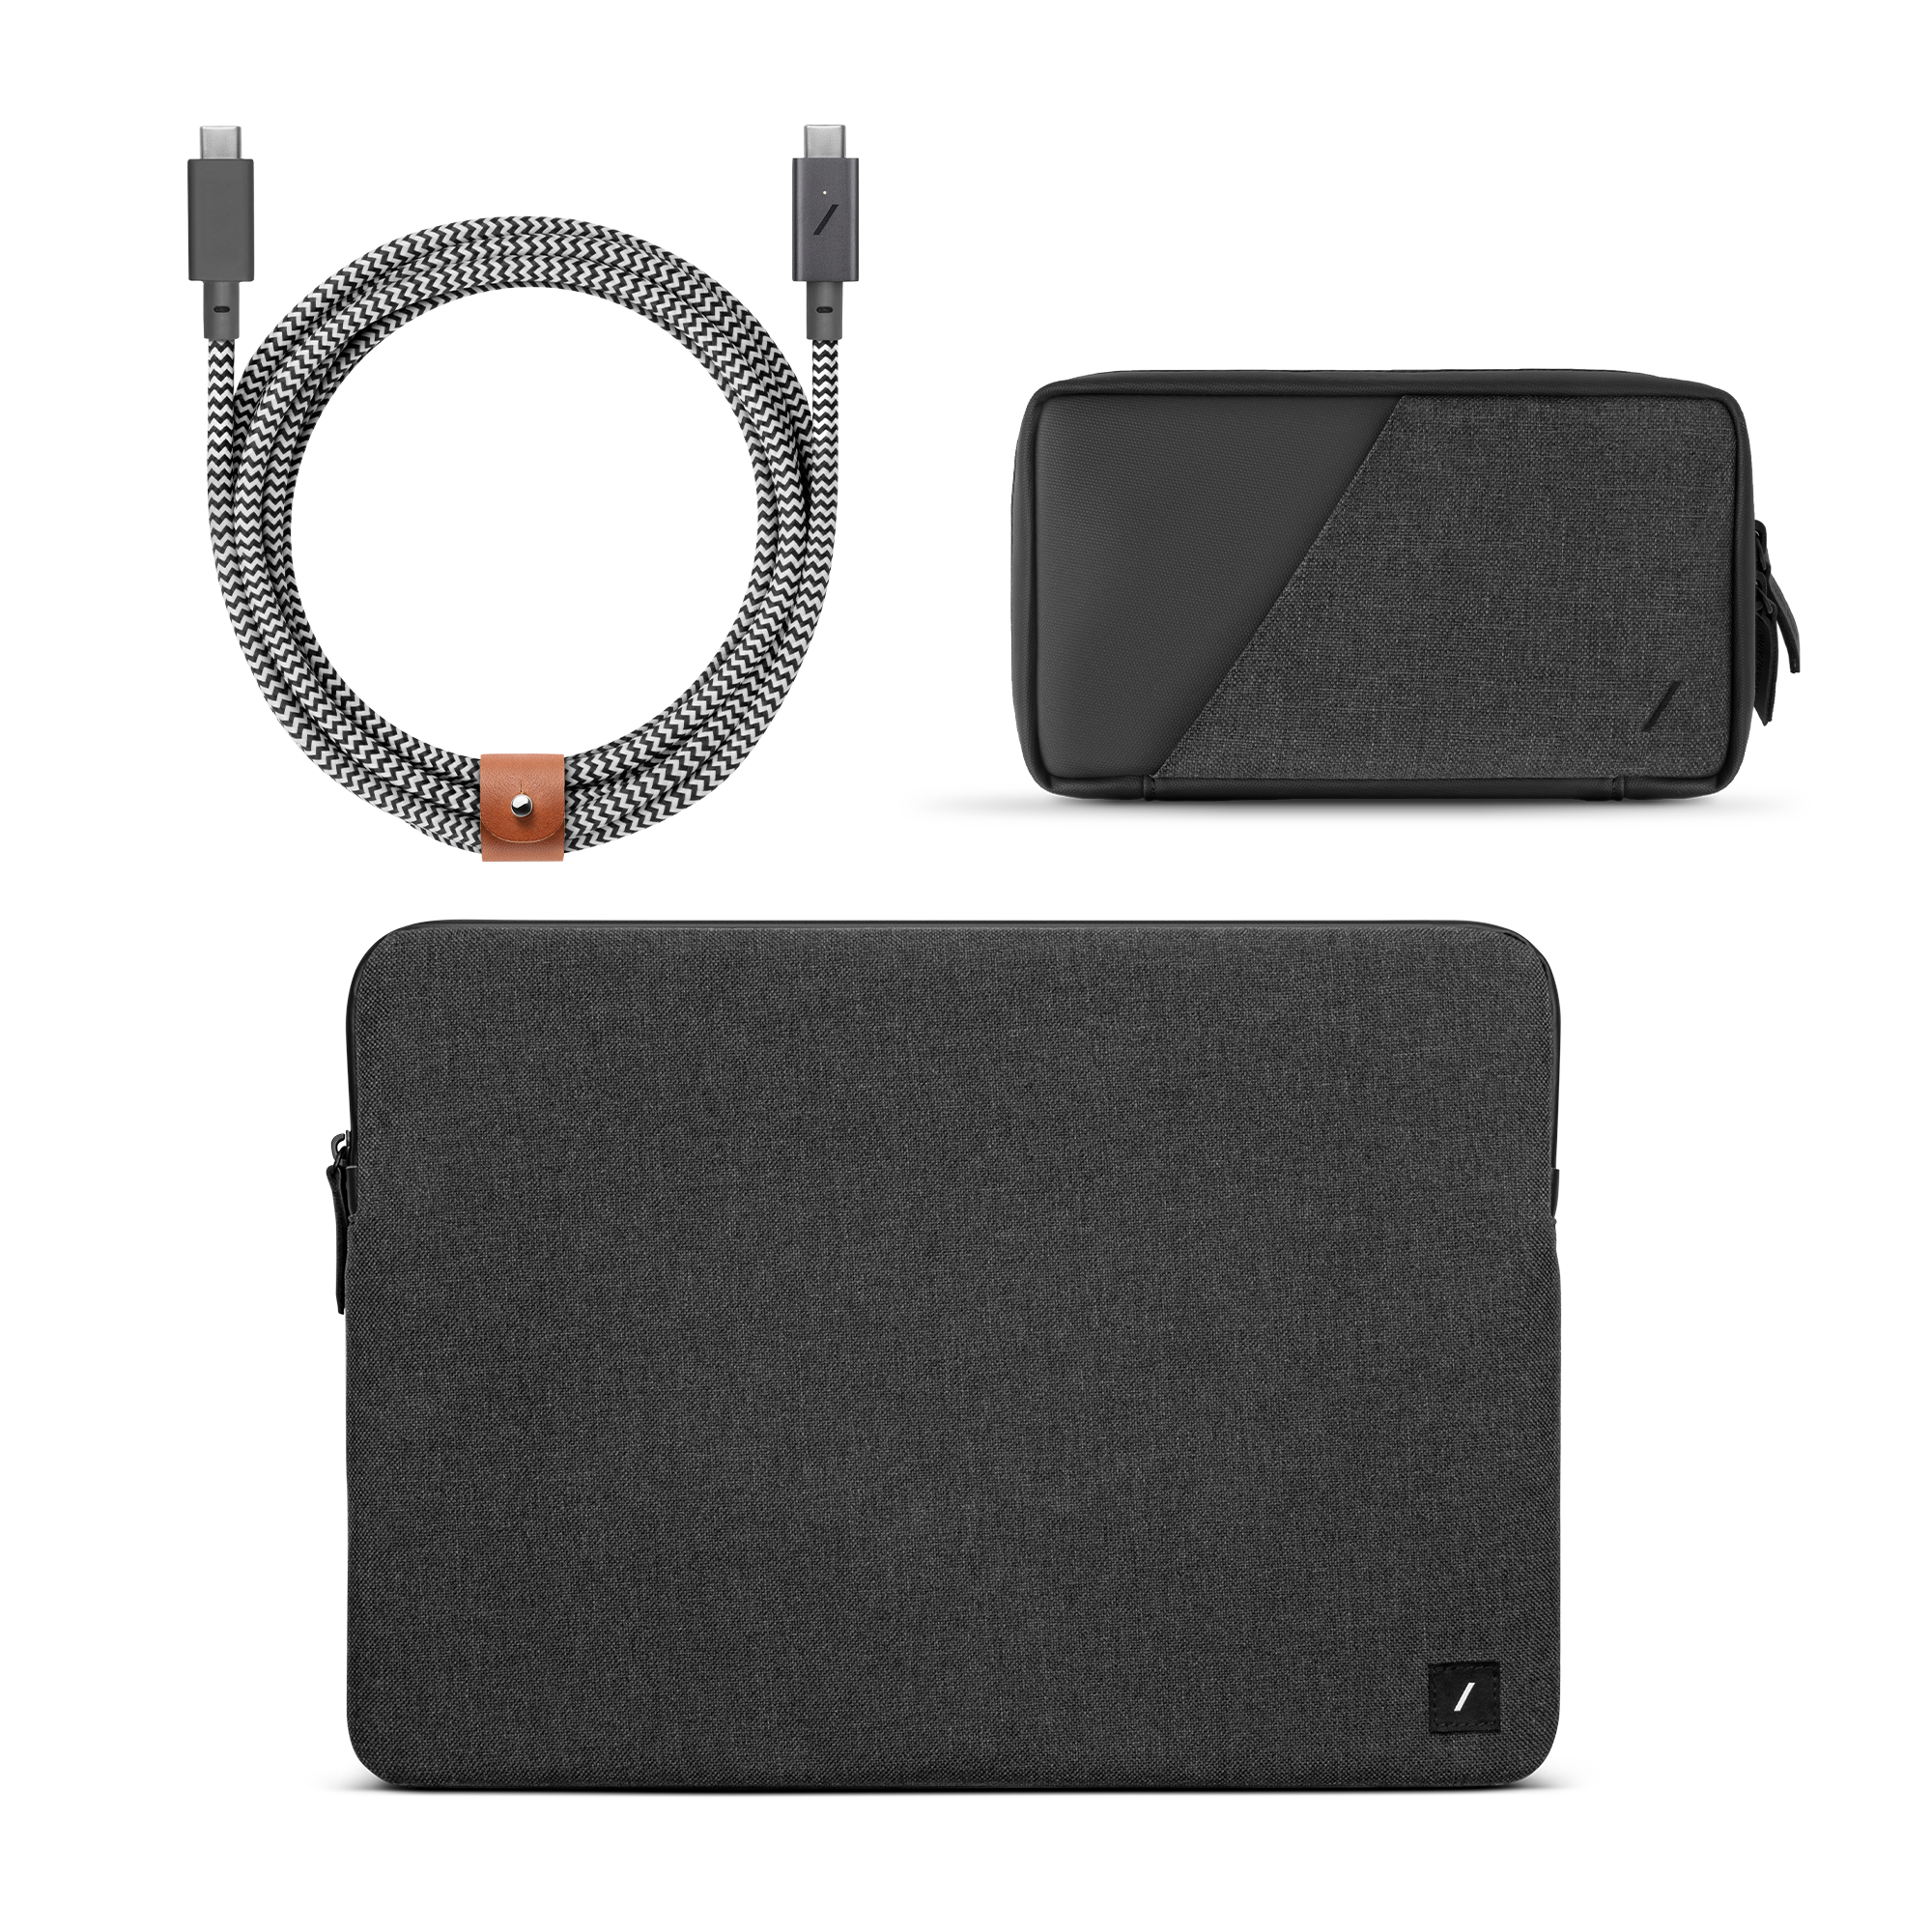 34391662428299,34391662461067,On-The-Go Essentials for MacBook 15""